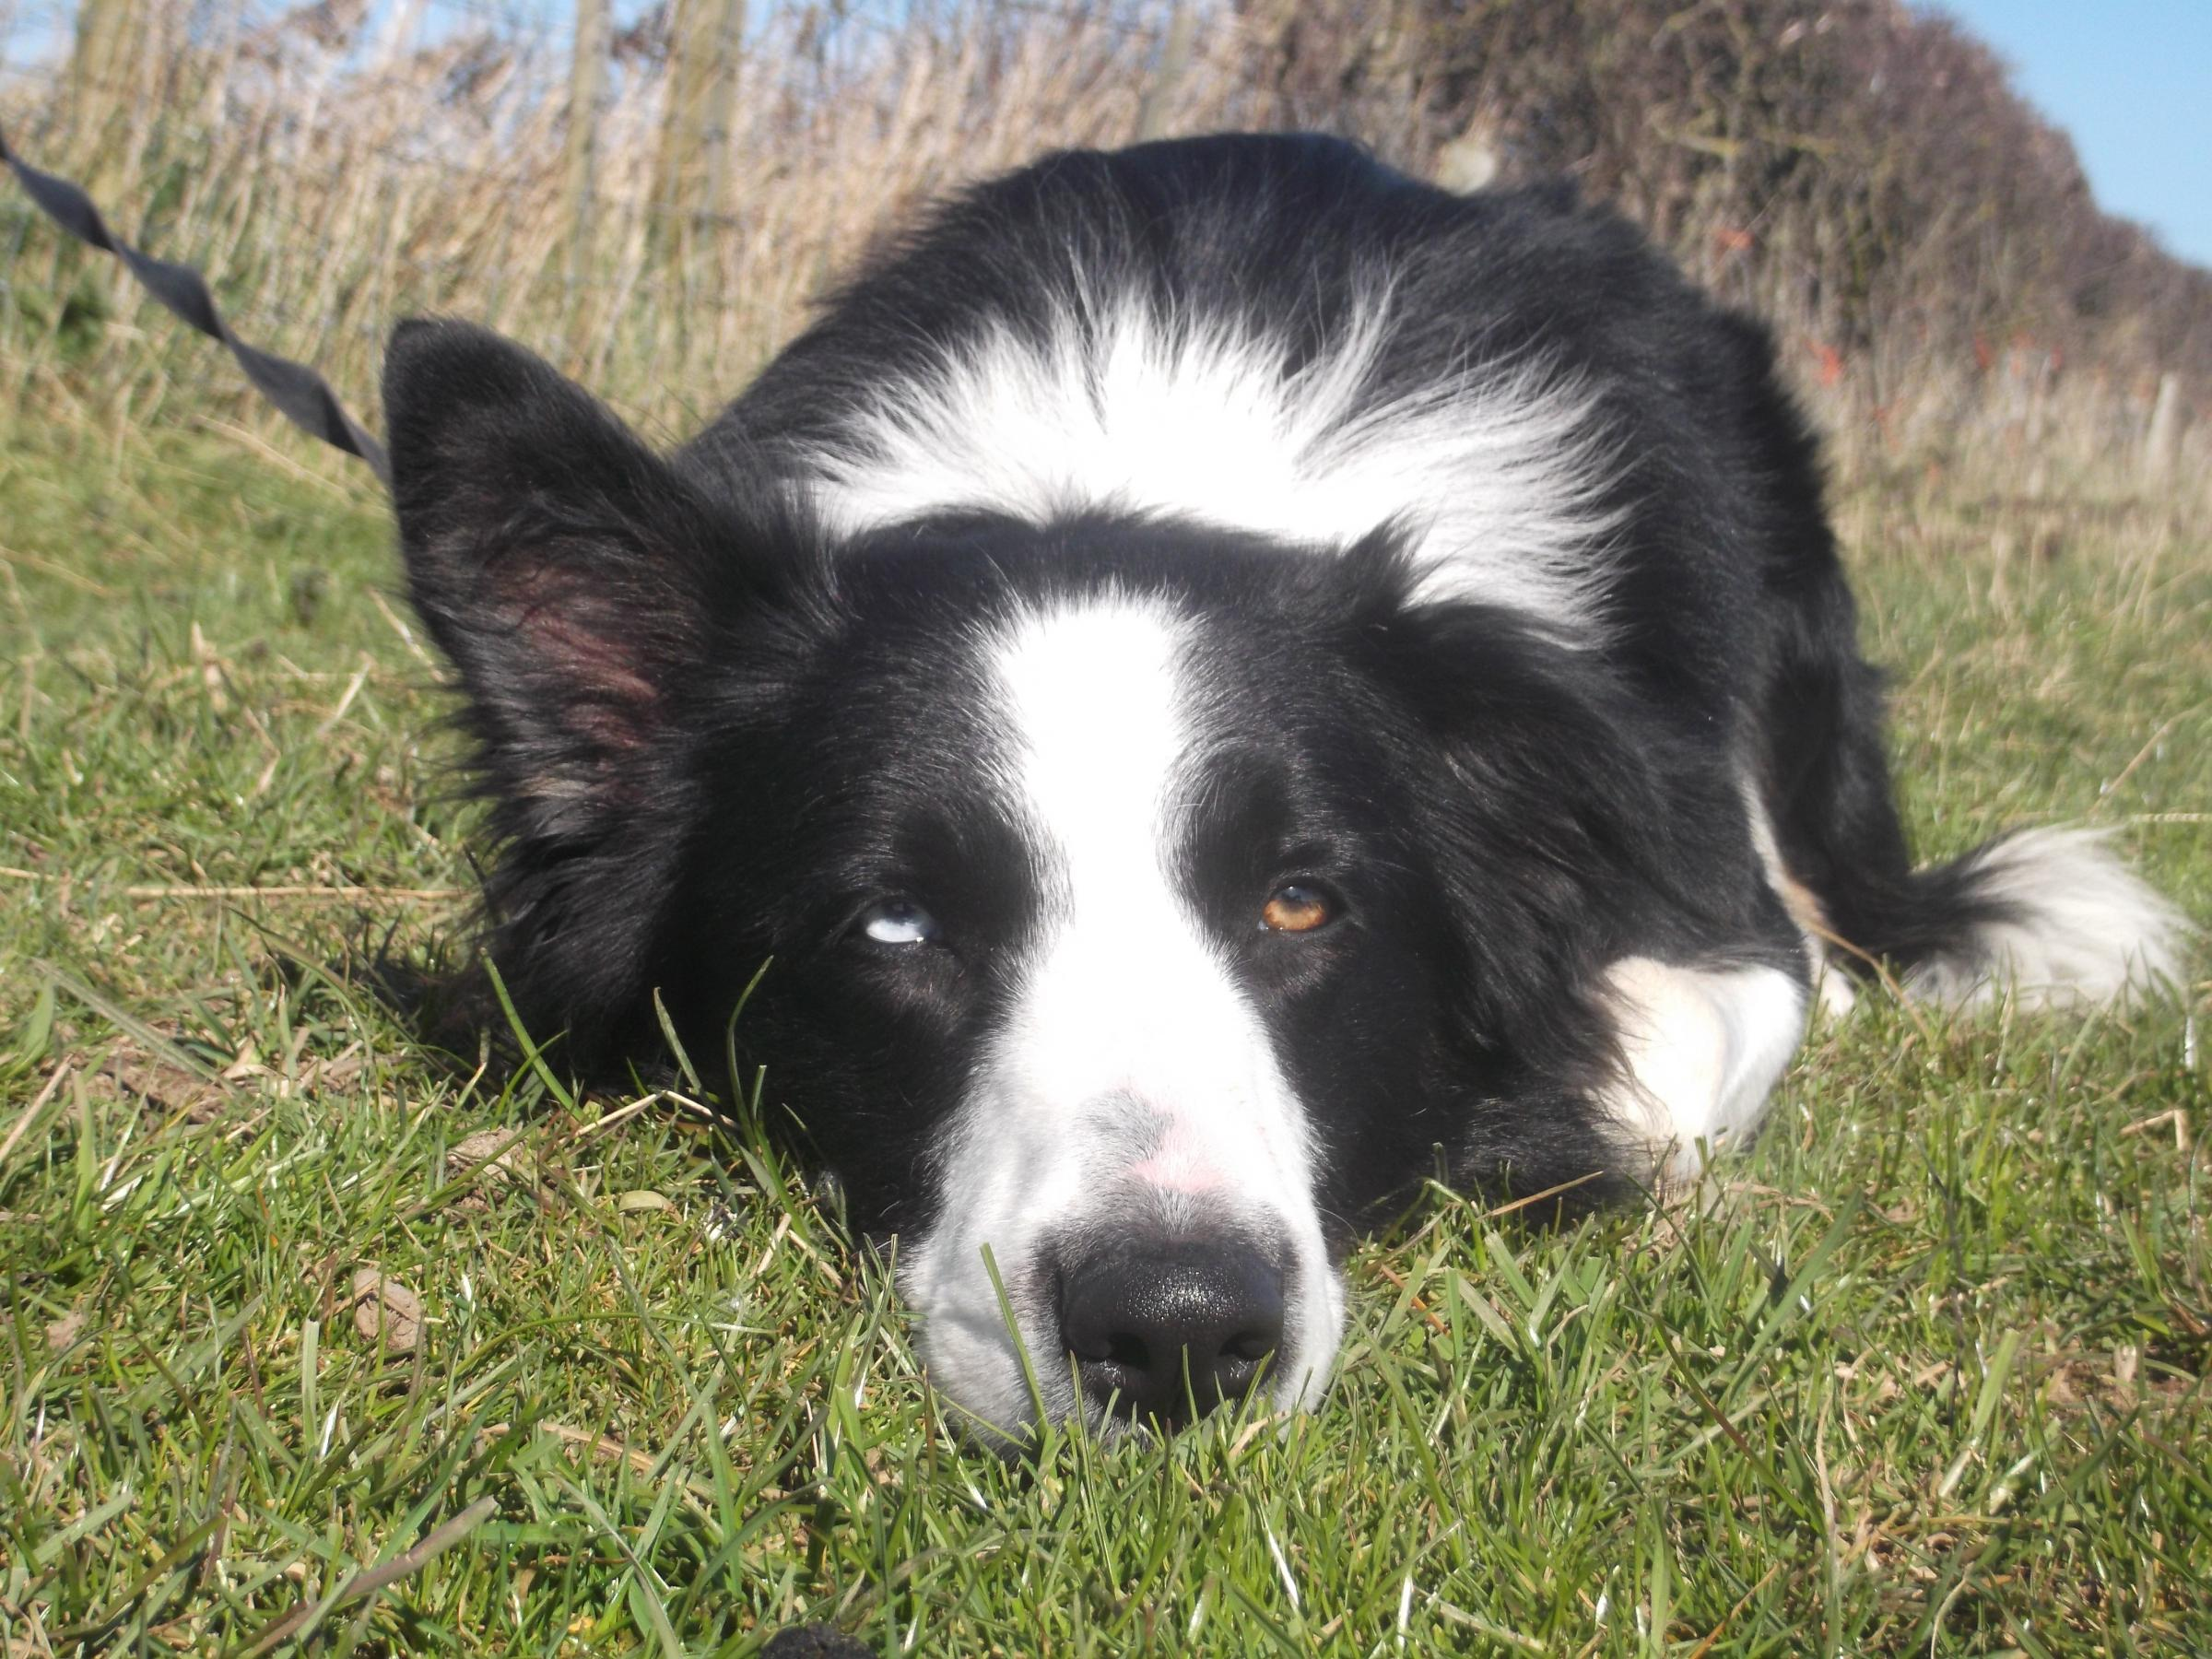 The Dogs Trust looks after animals like border collie Blue who needs a new home